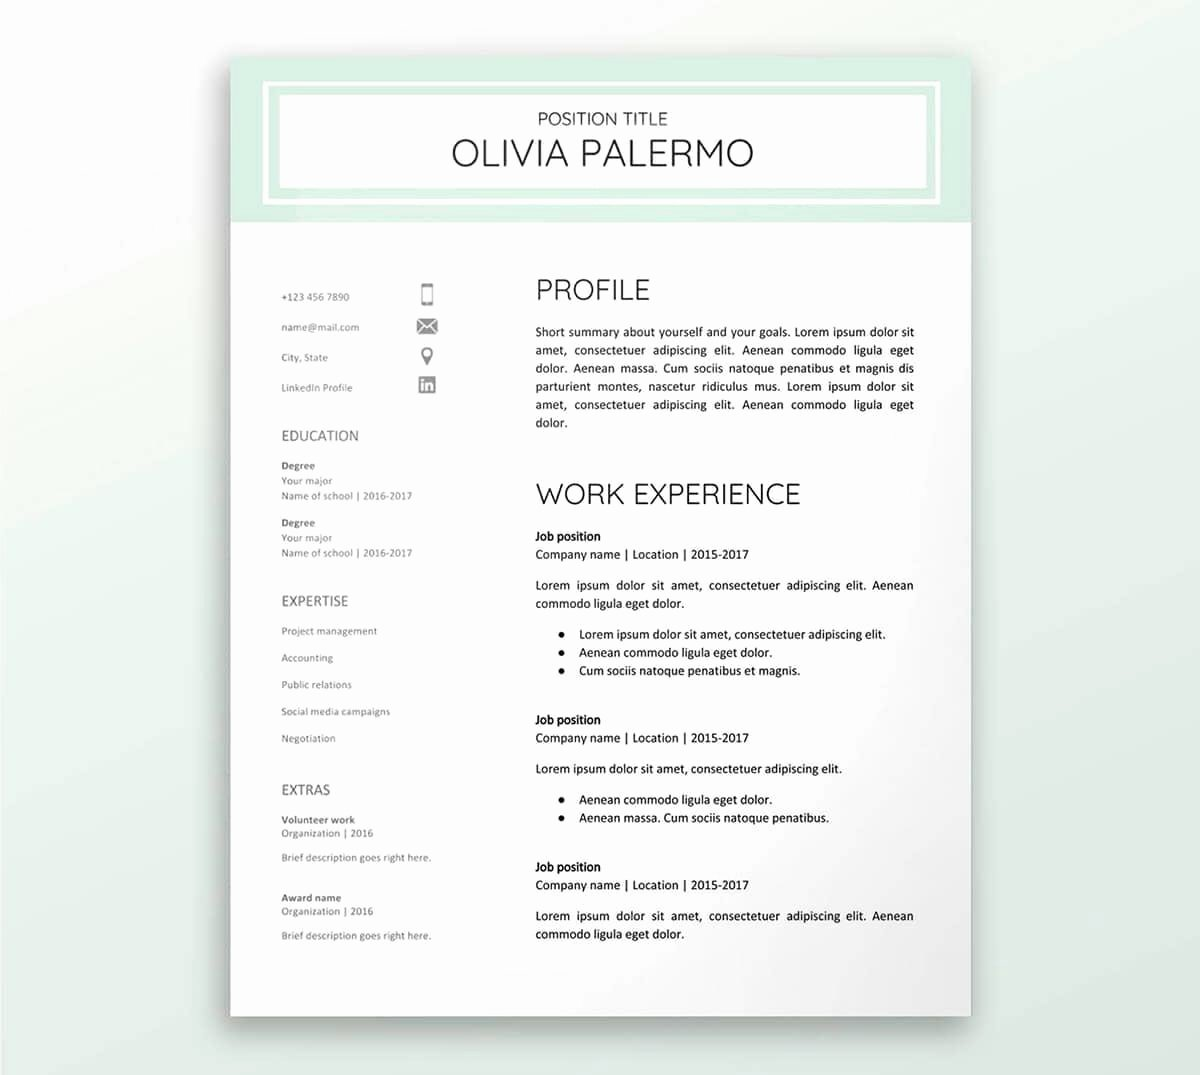 Theatre Resume Template Google Docs Elegant Google Docs Resume Templates 10 Free formats to Download 2019